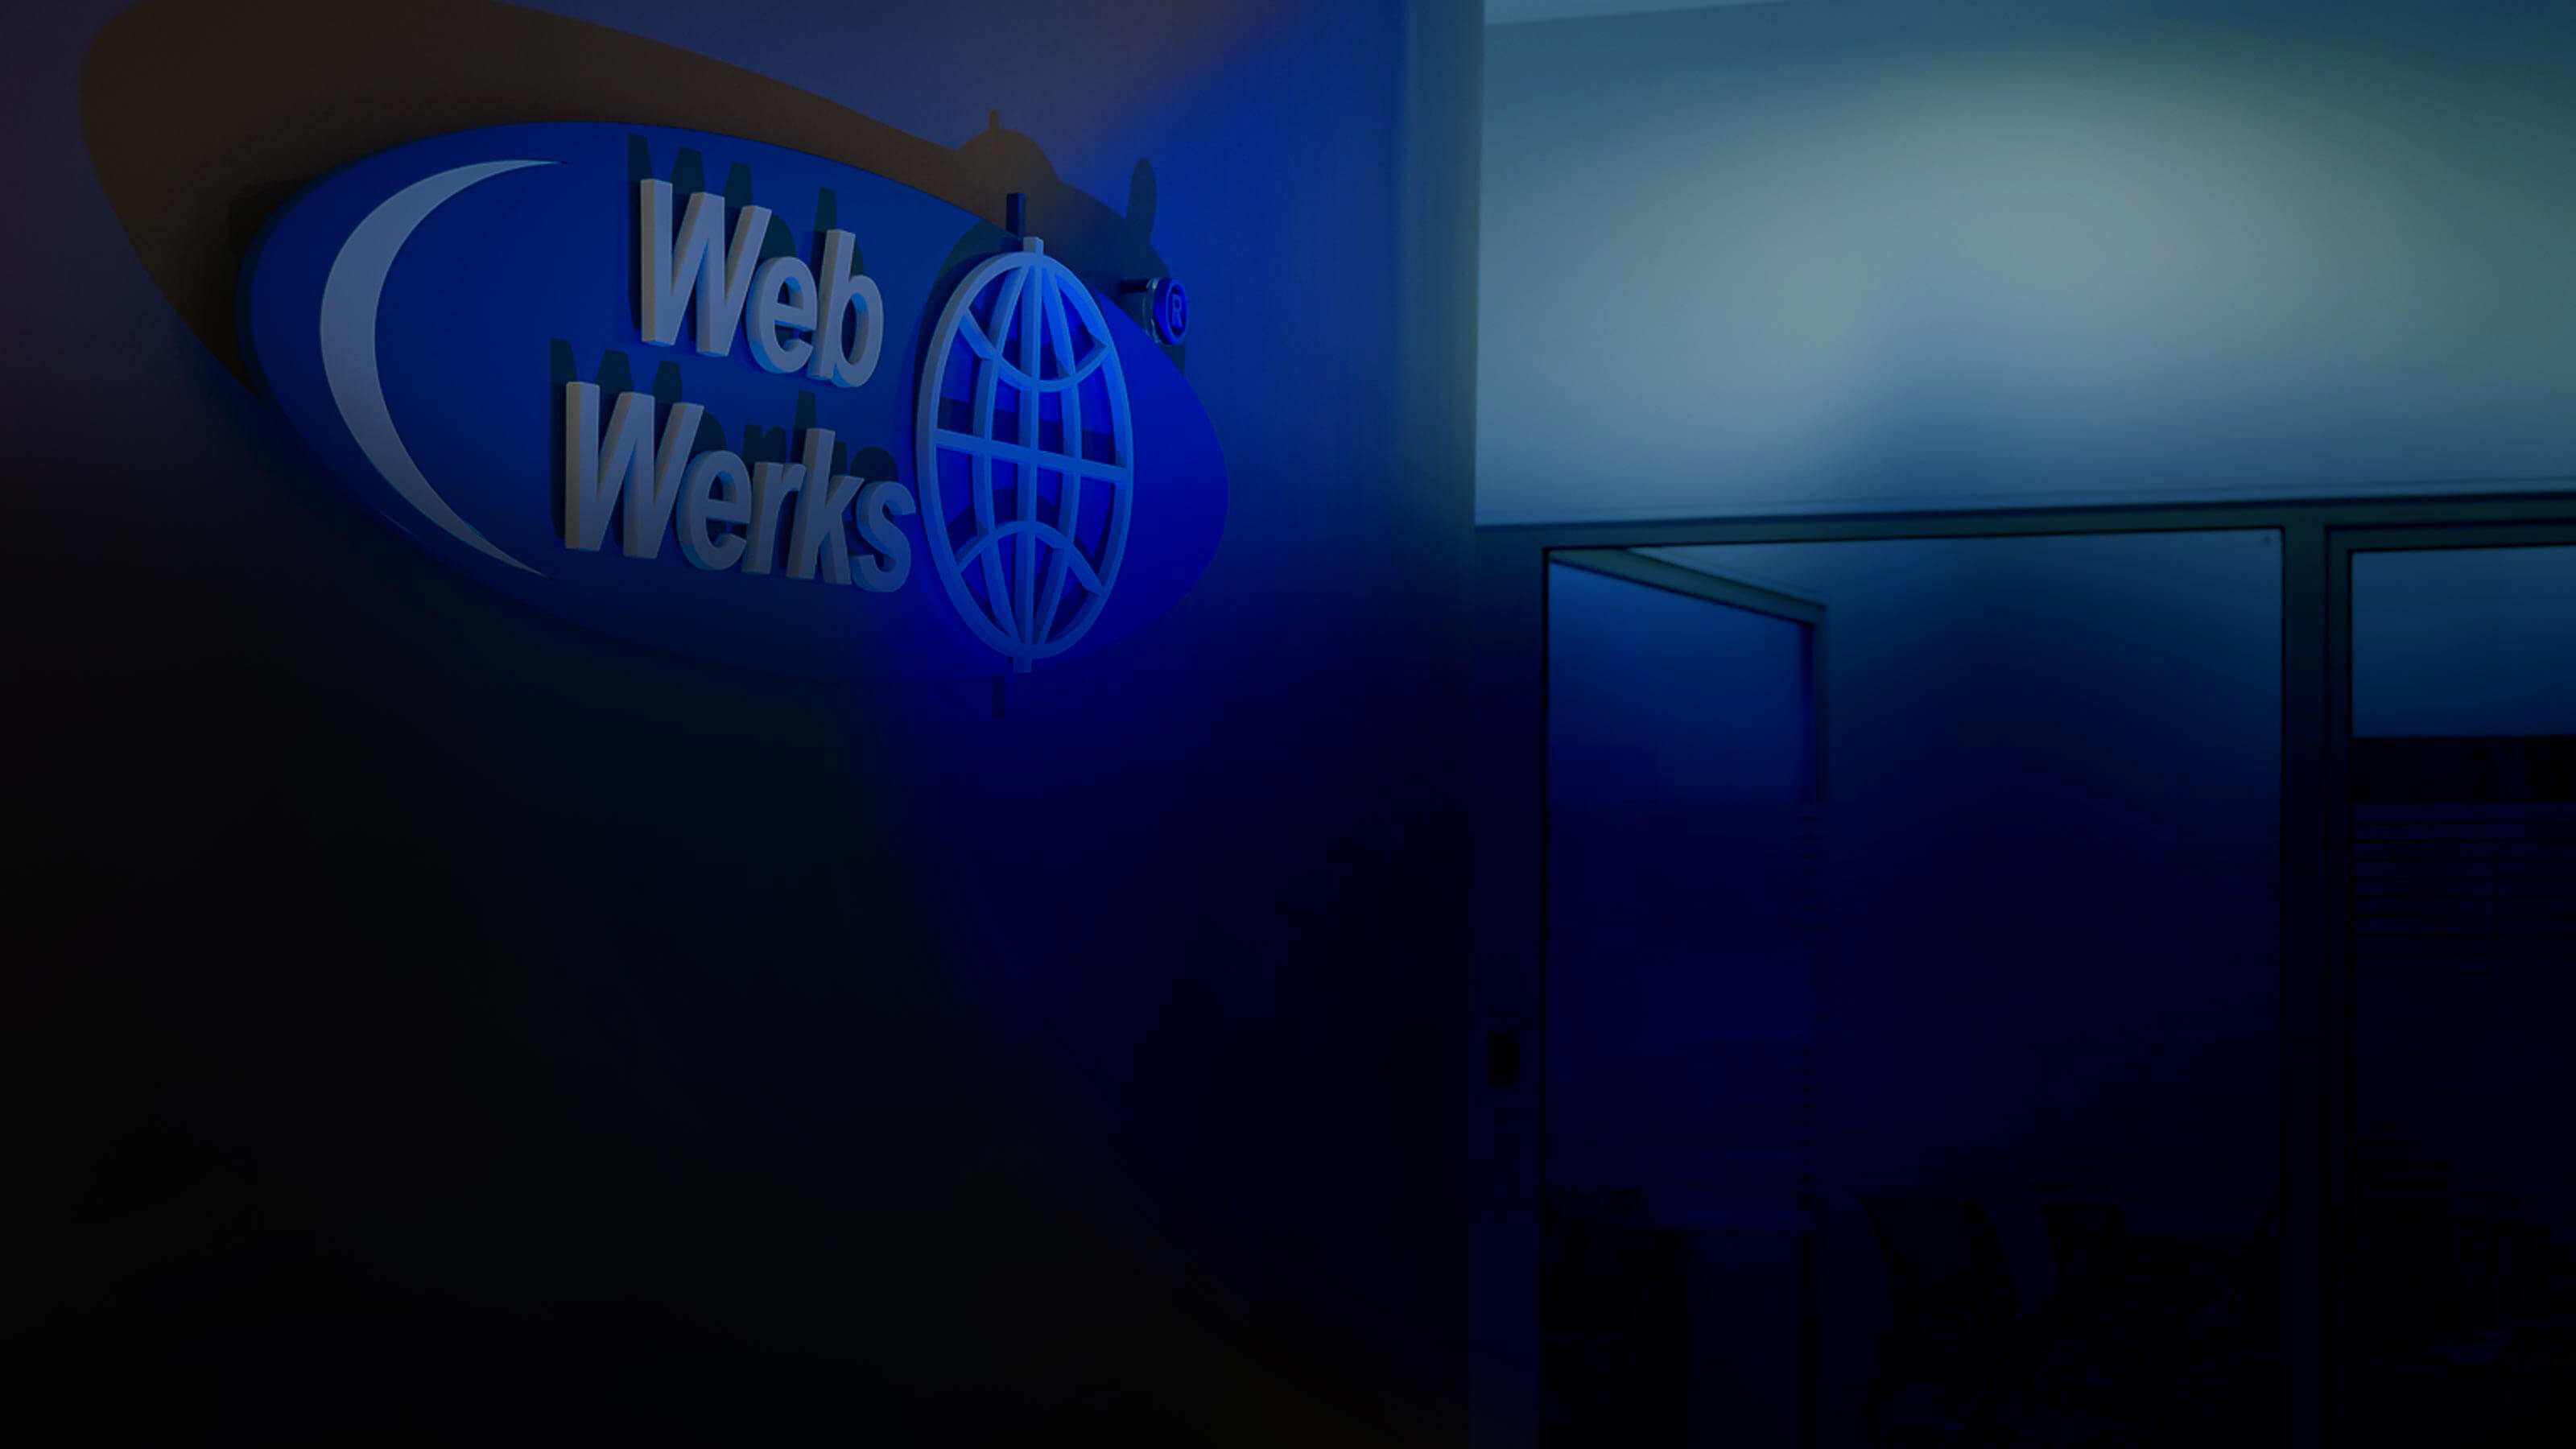 About Web Werks